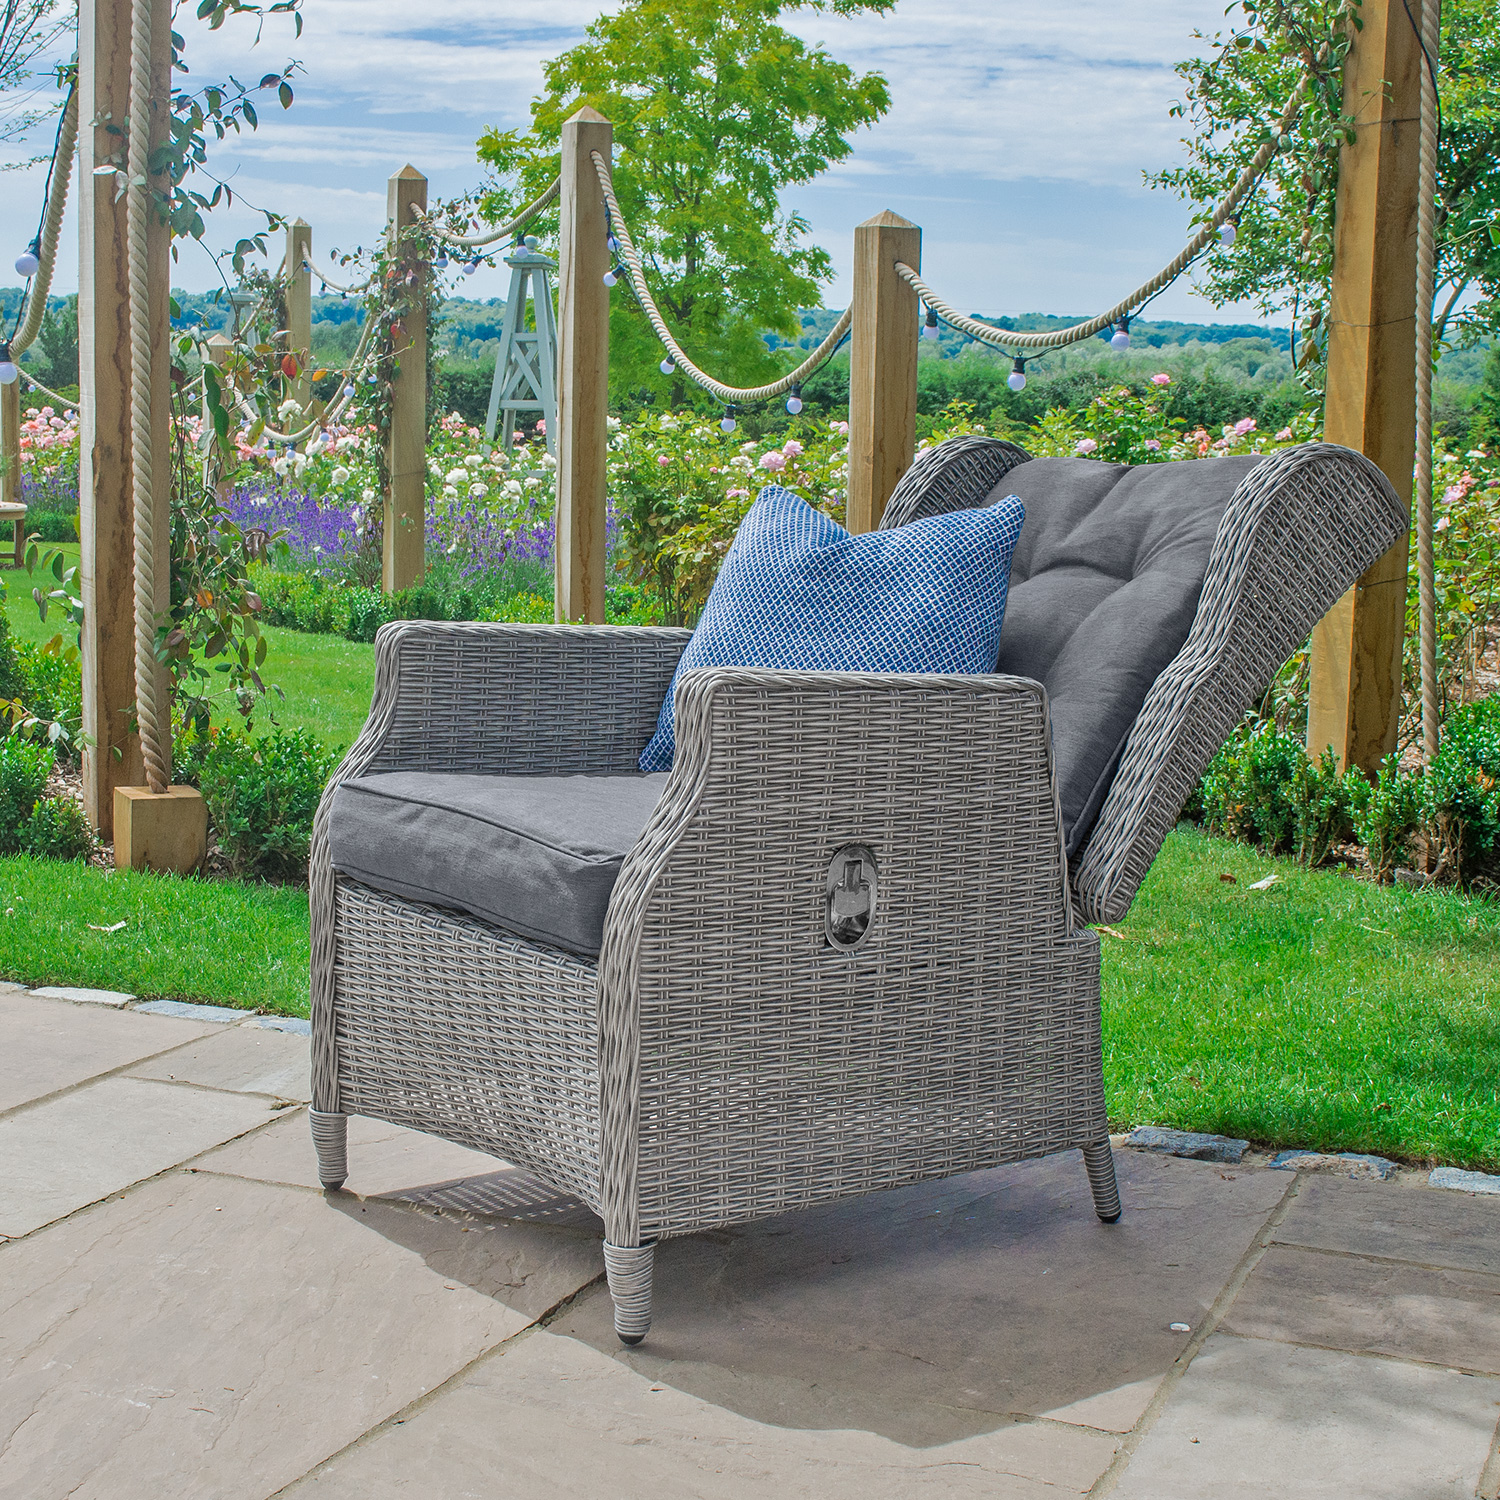 Reclining Garden Furniture